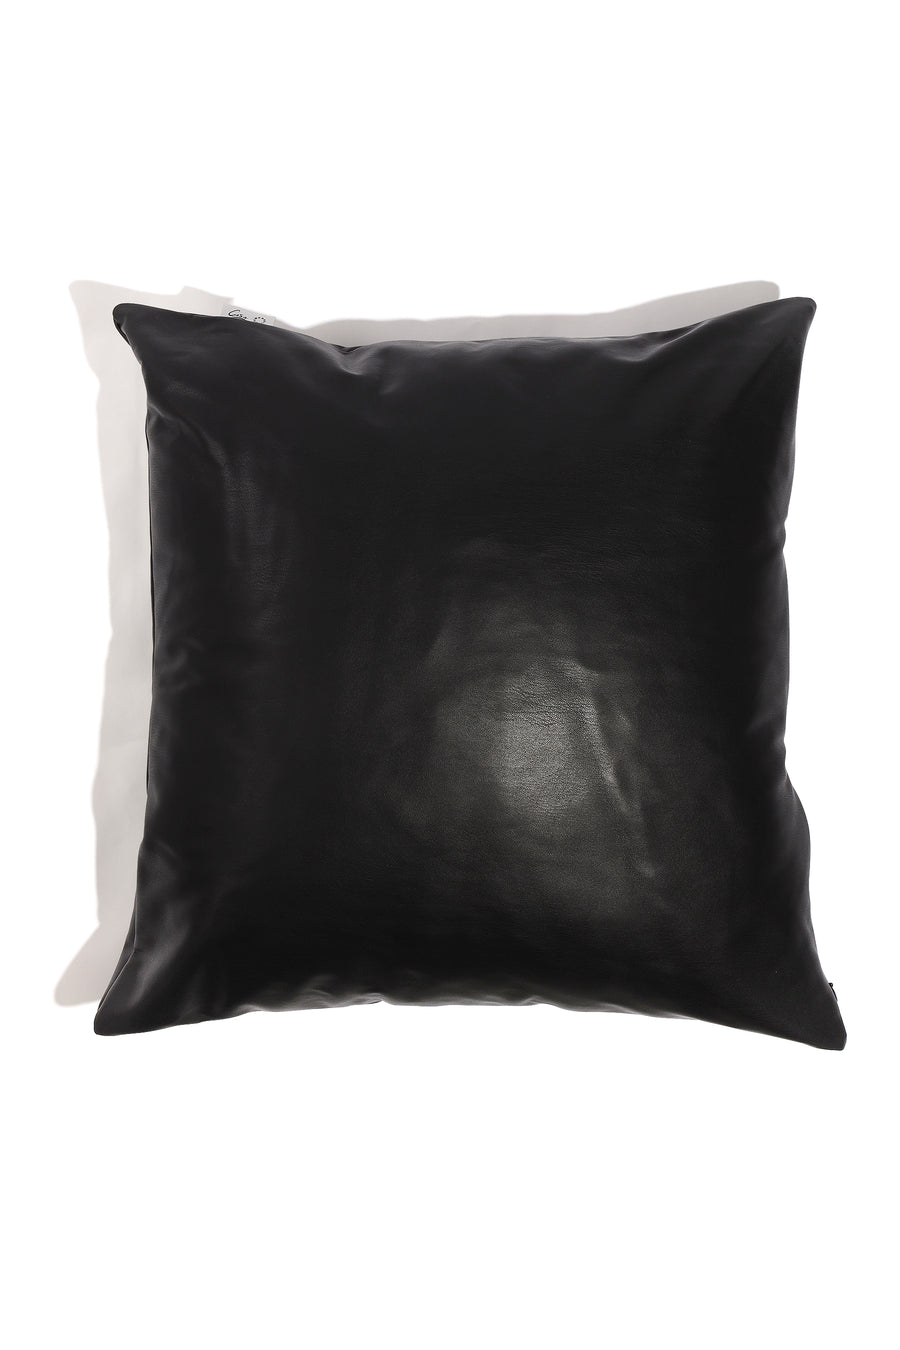 CaSa Vegan Leather Square Pillow in Black